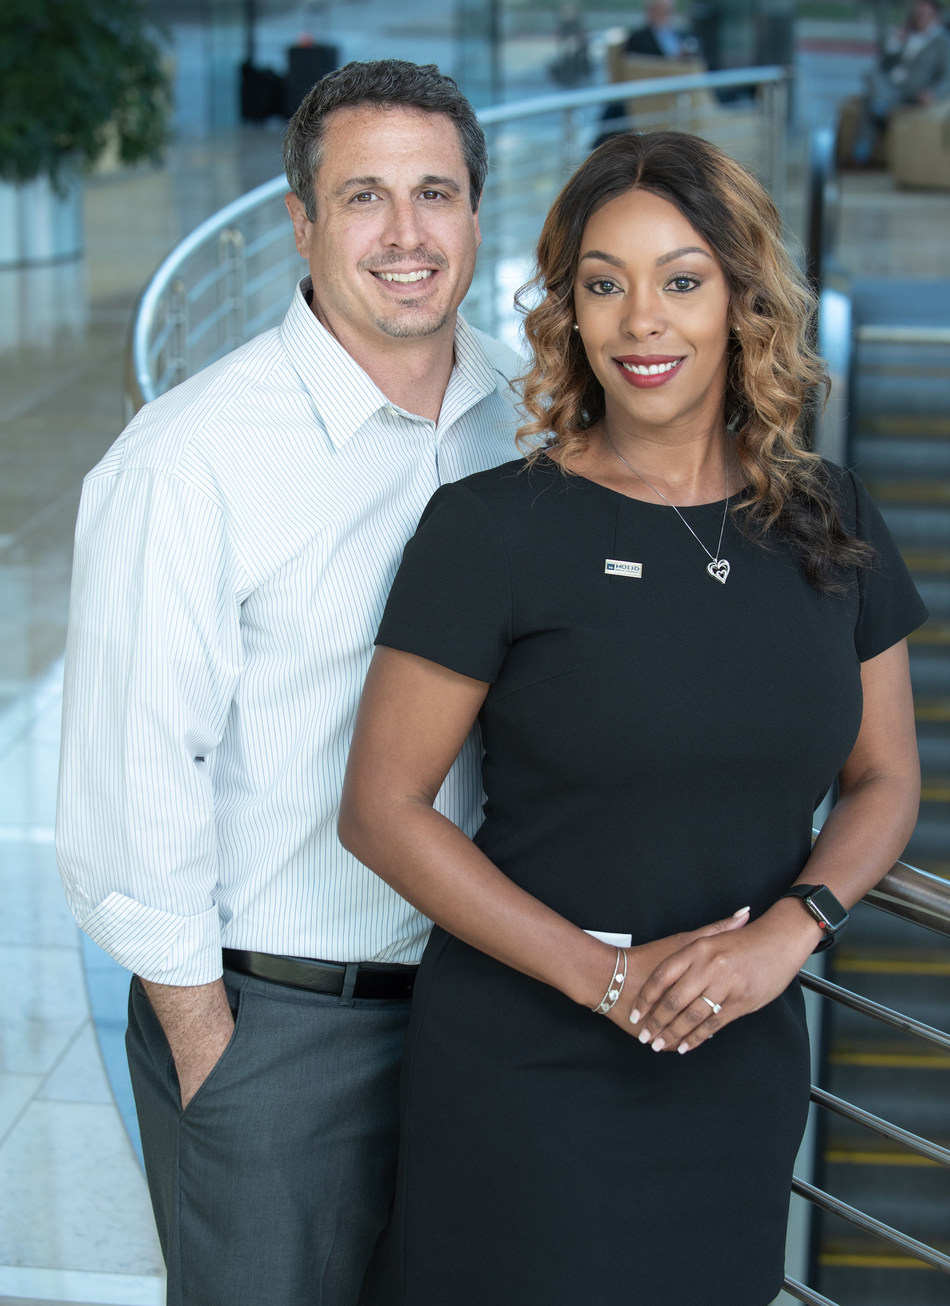 Kendall and Bill Bonner, Broker Owners of Motto Mortgage Resource, based in Lutz, Florida and serving the Tampa Bay Metro Area. The Bonners also own RE/MAX Capital Realty.